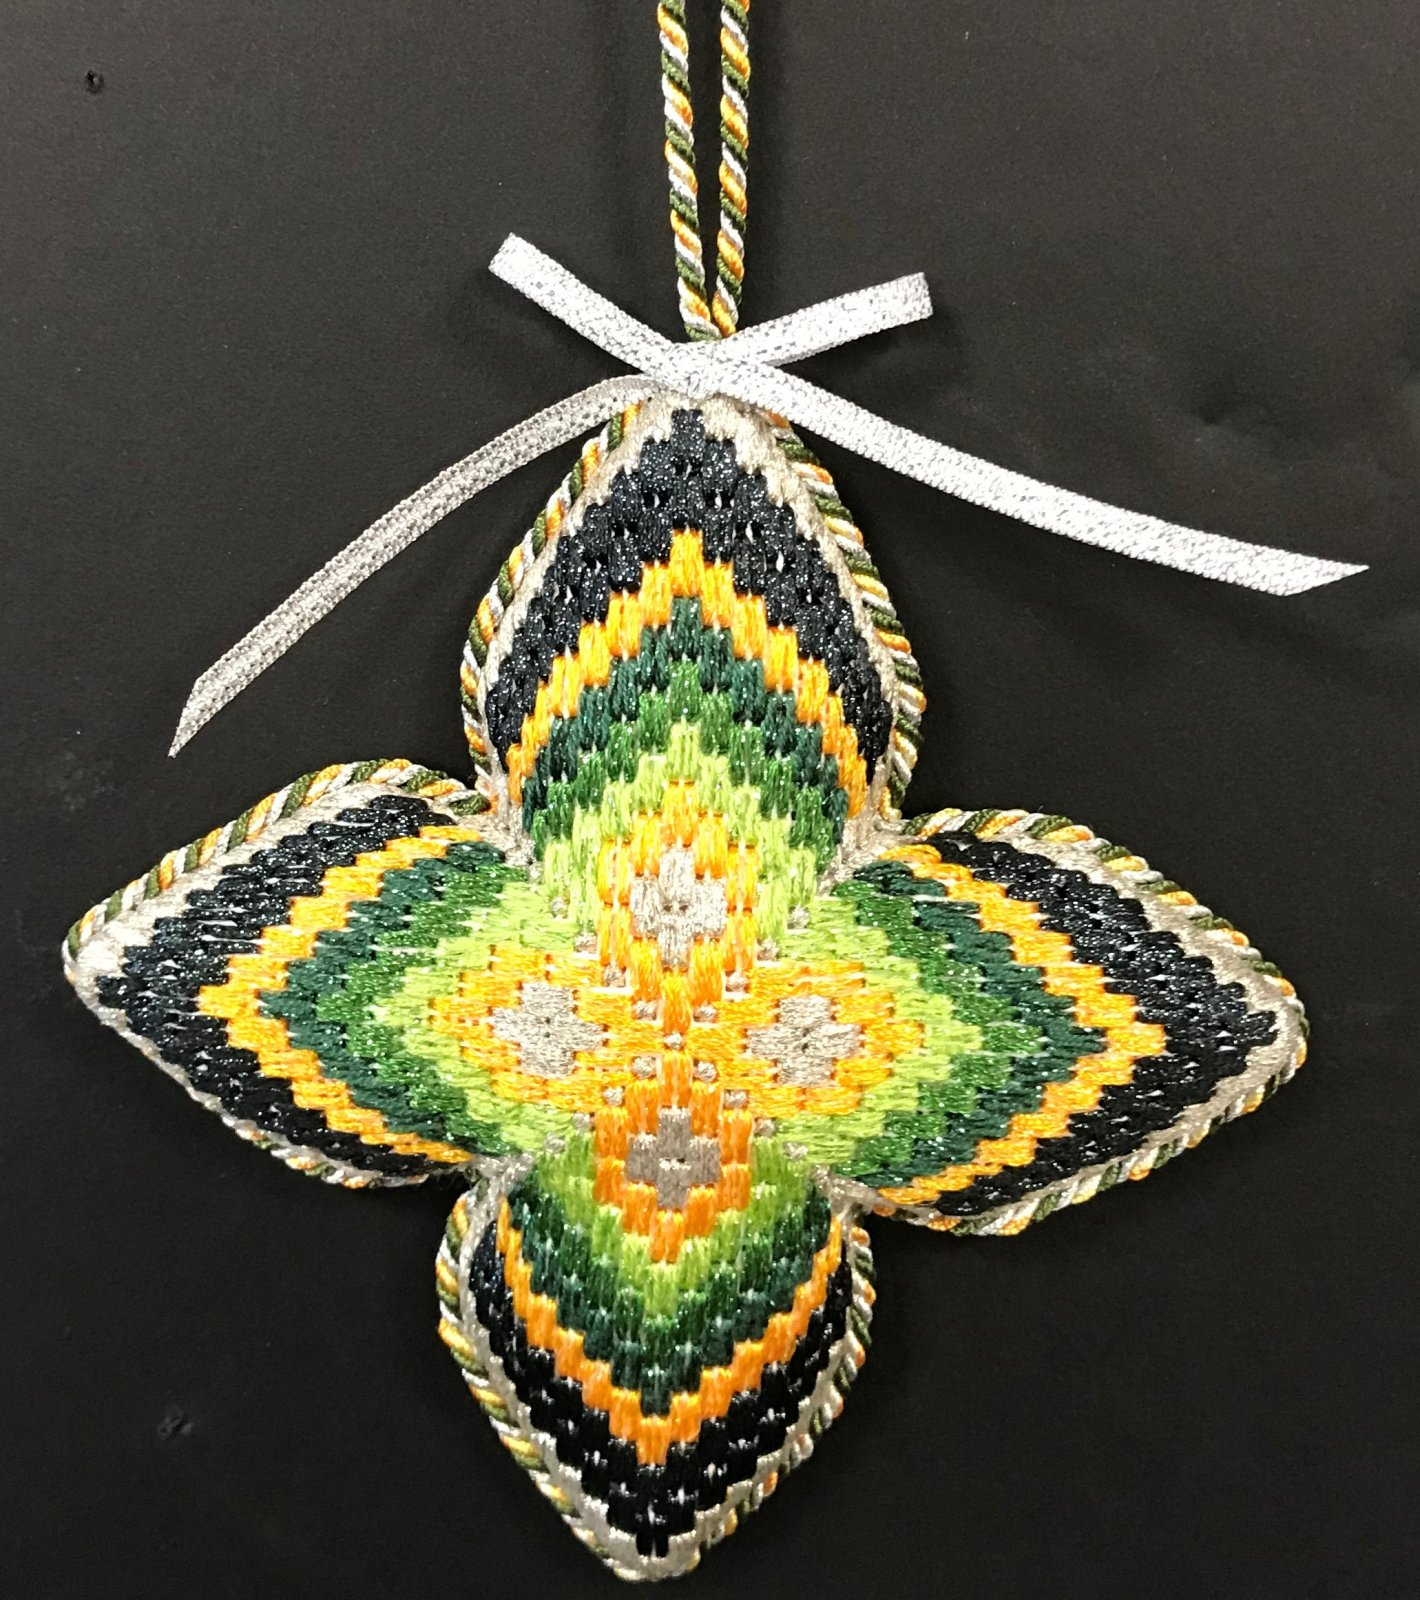 Bargello Ornament #5 - stitched by Stacey G.